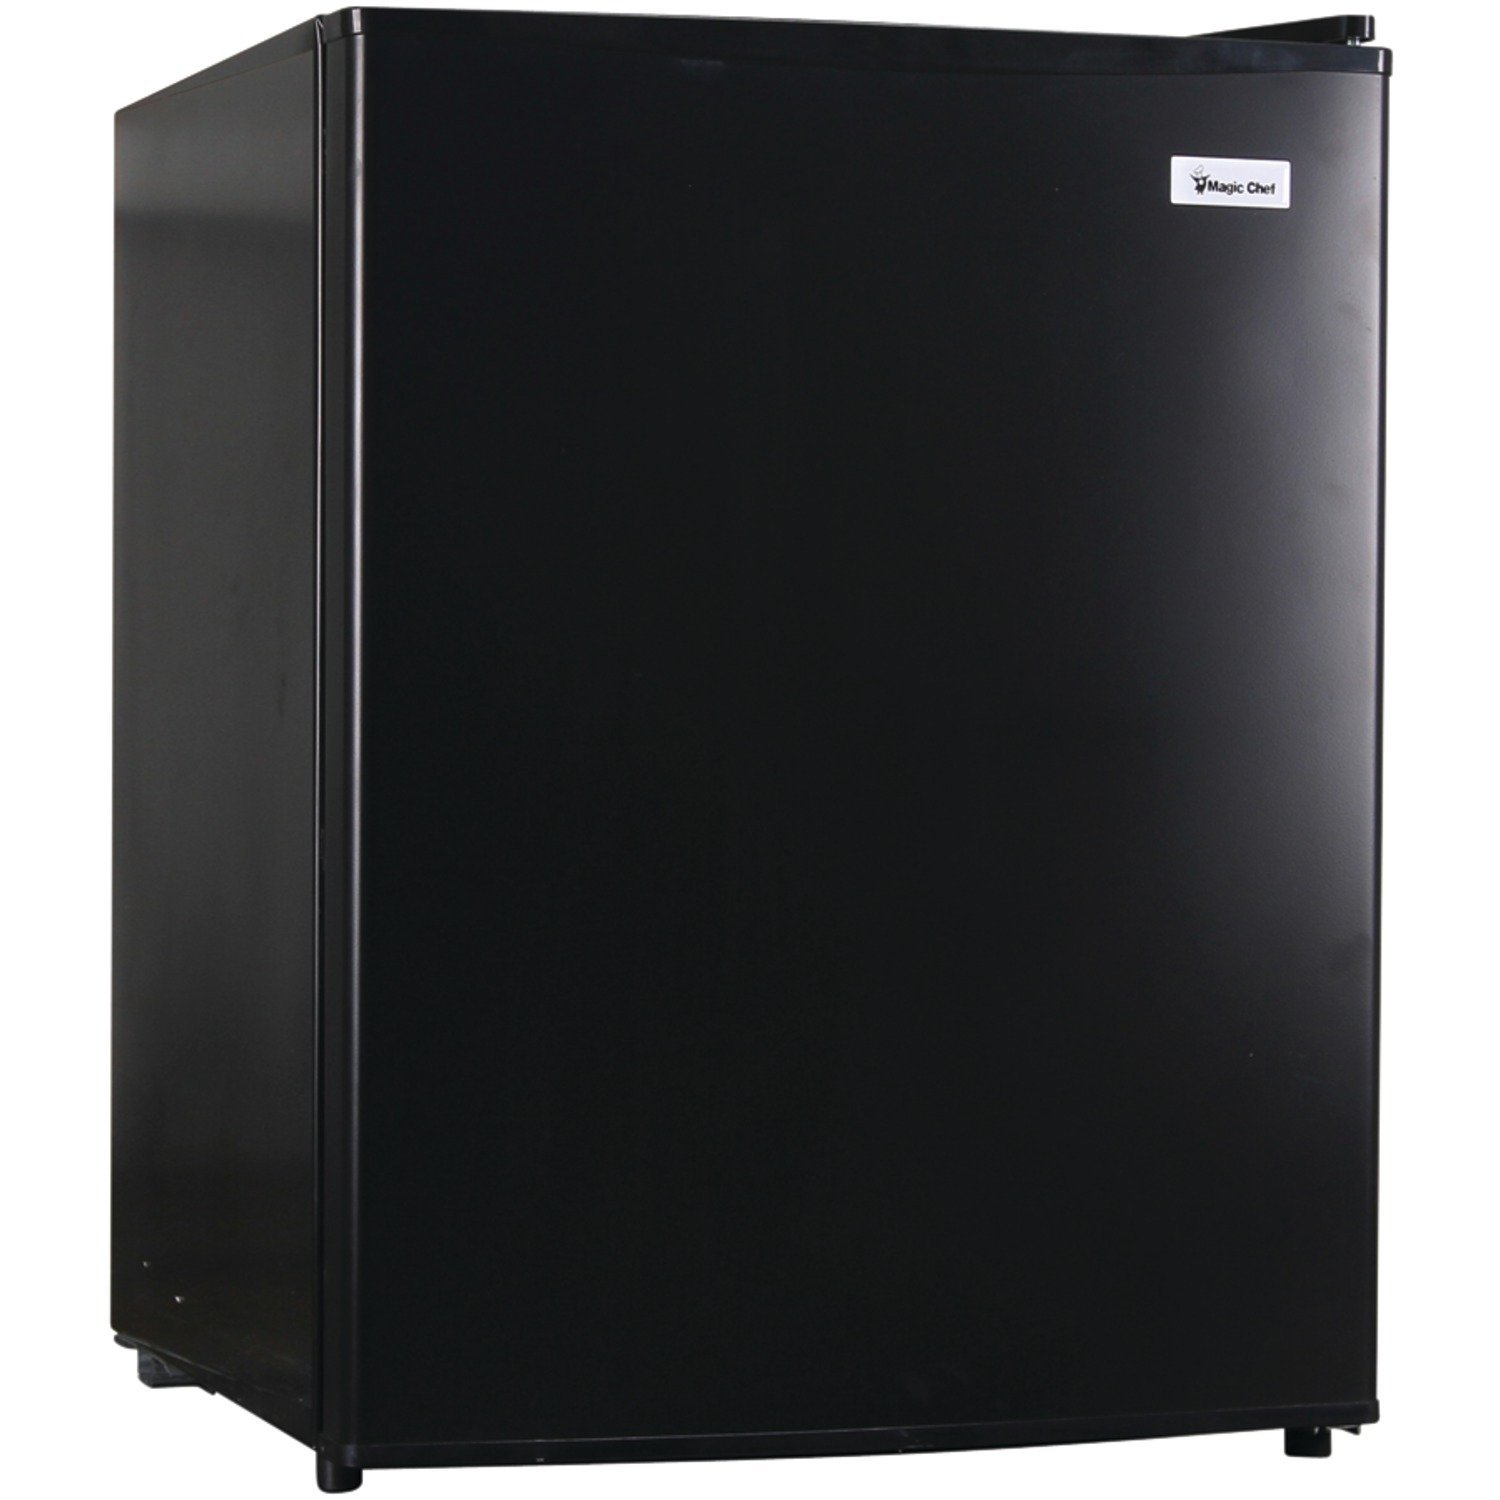 Magic Chef MCAR240B2 2.4 cu.ft. All Refrigerator, Black